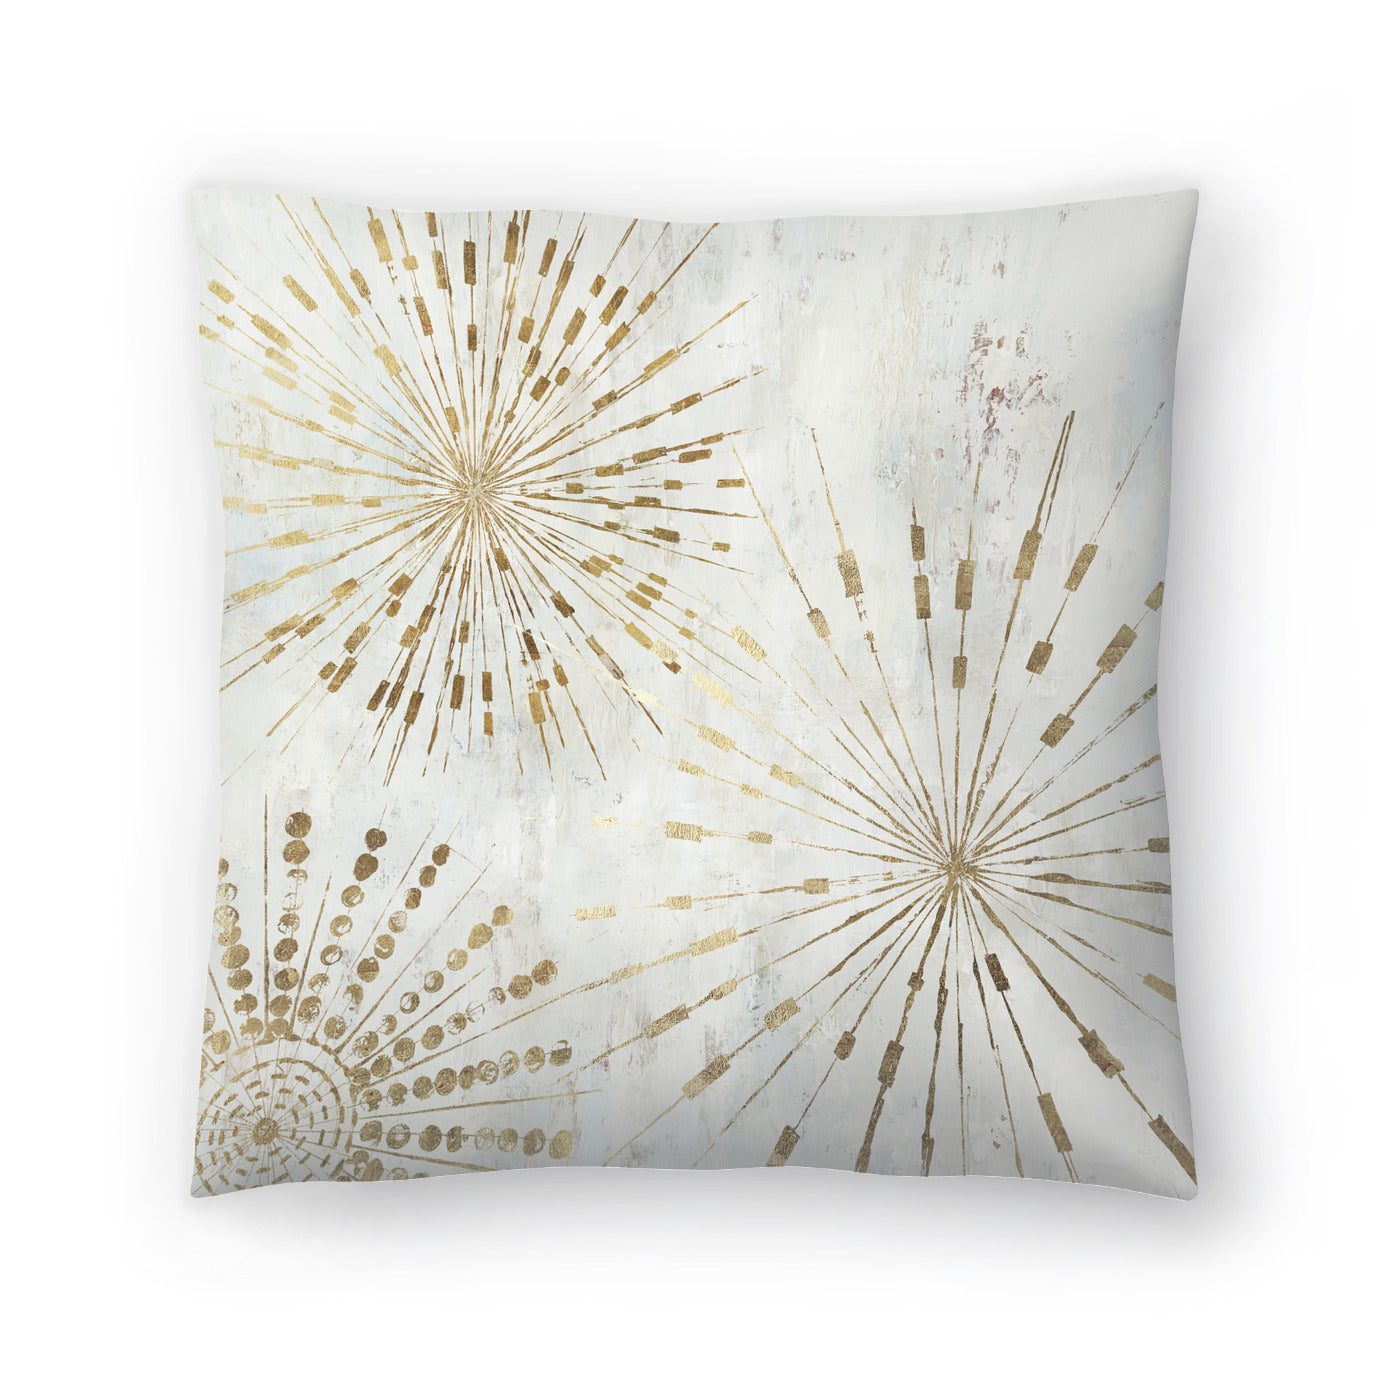 Golden Stars I by PI Creative Art Decorative Pillow - Decorative Pillow - Americanflat